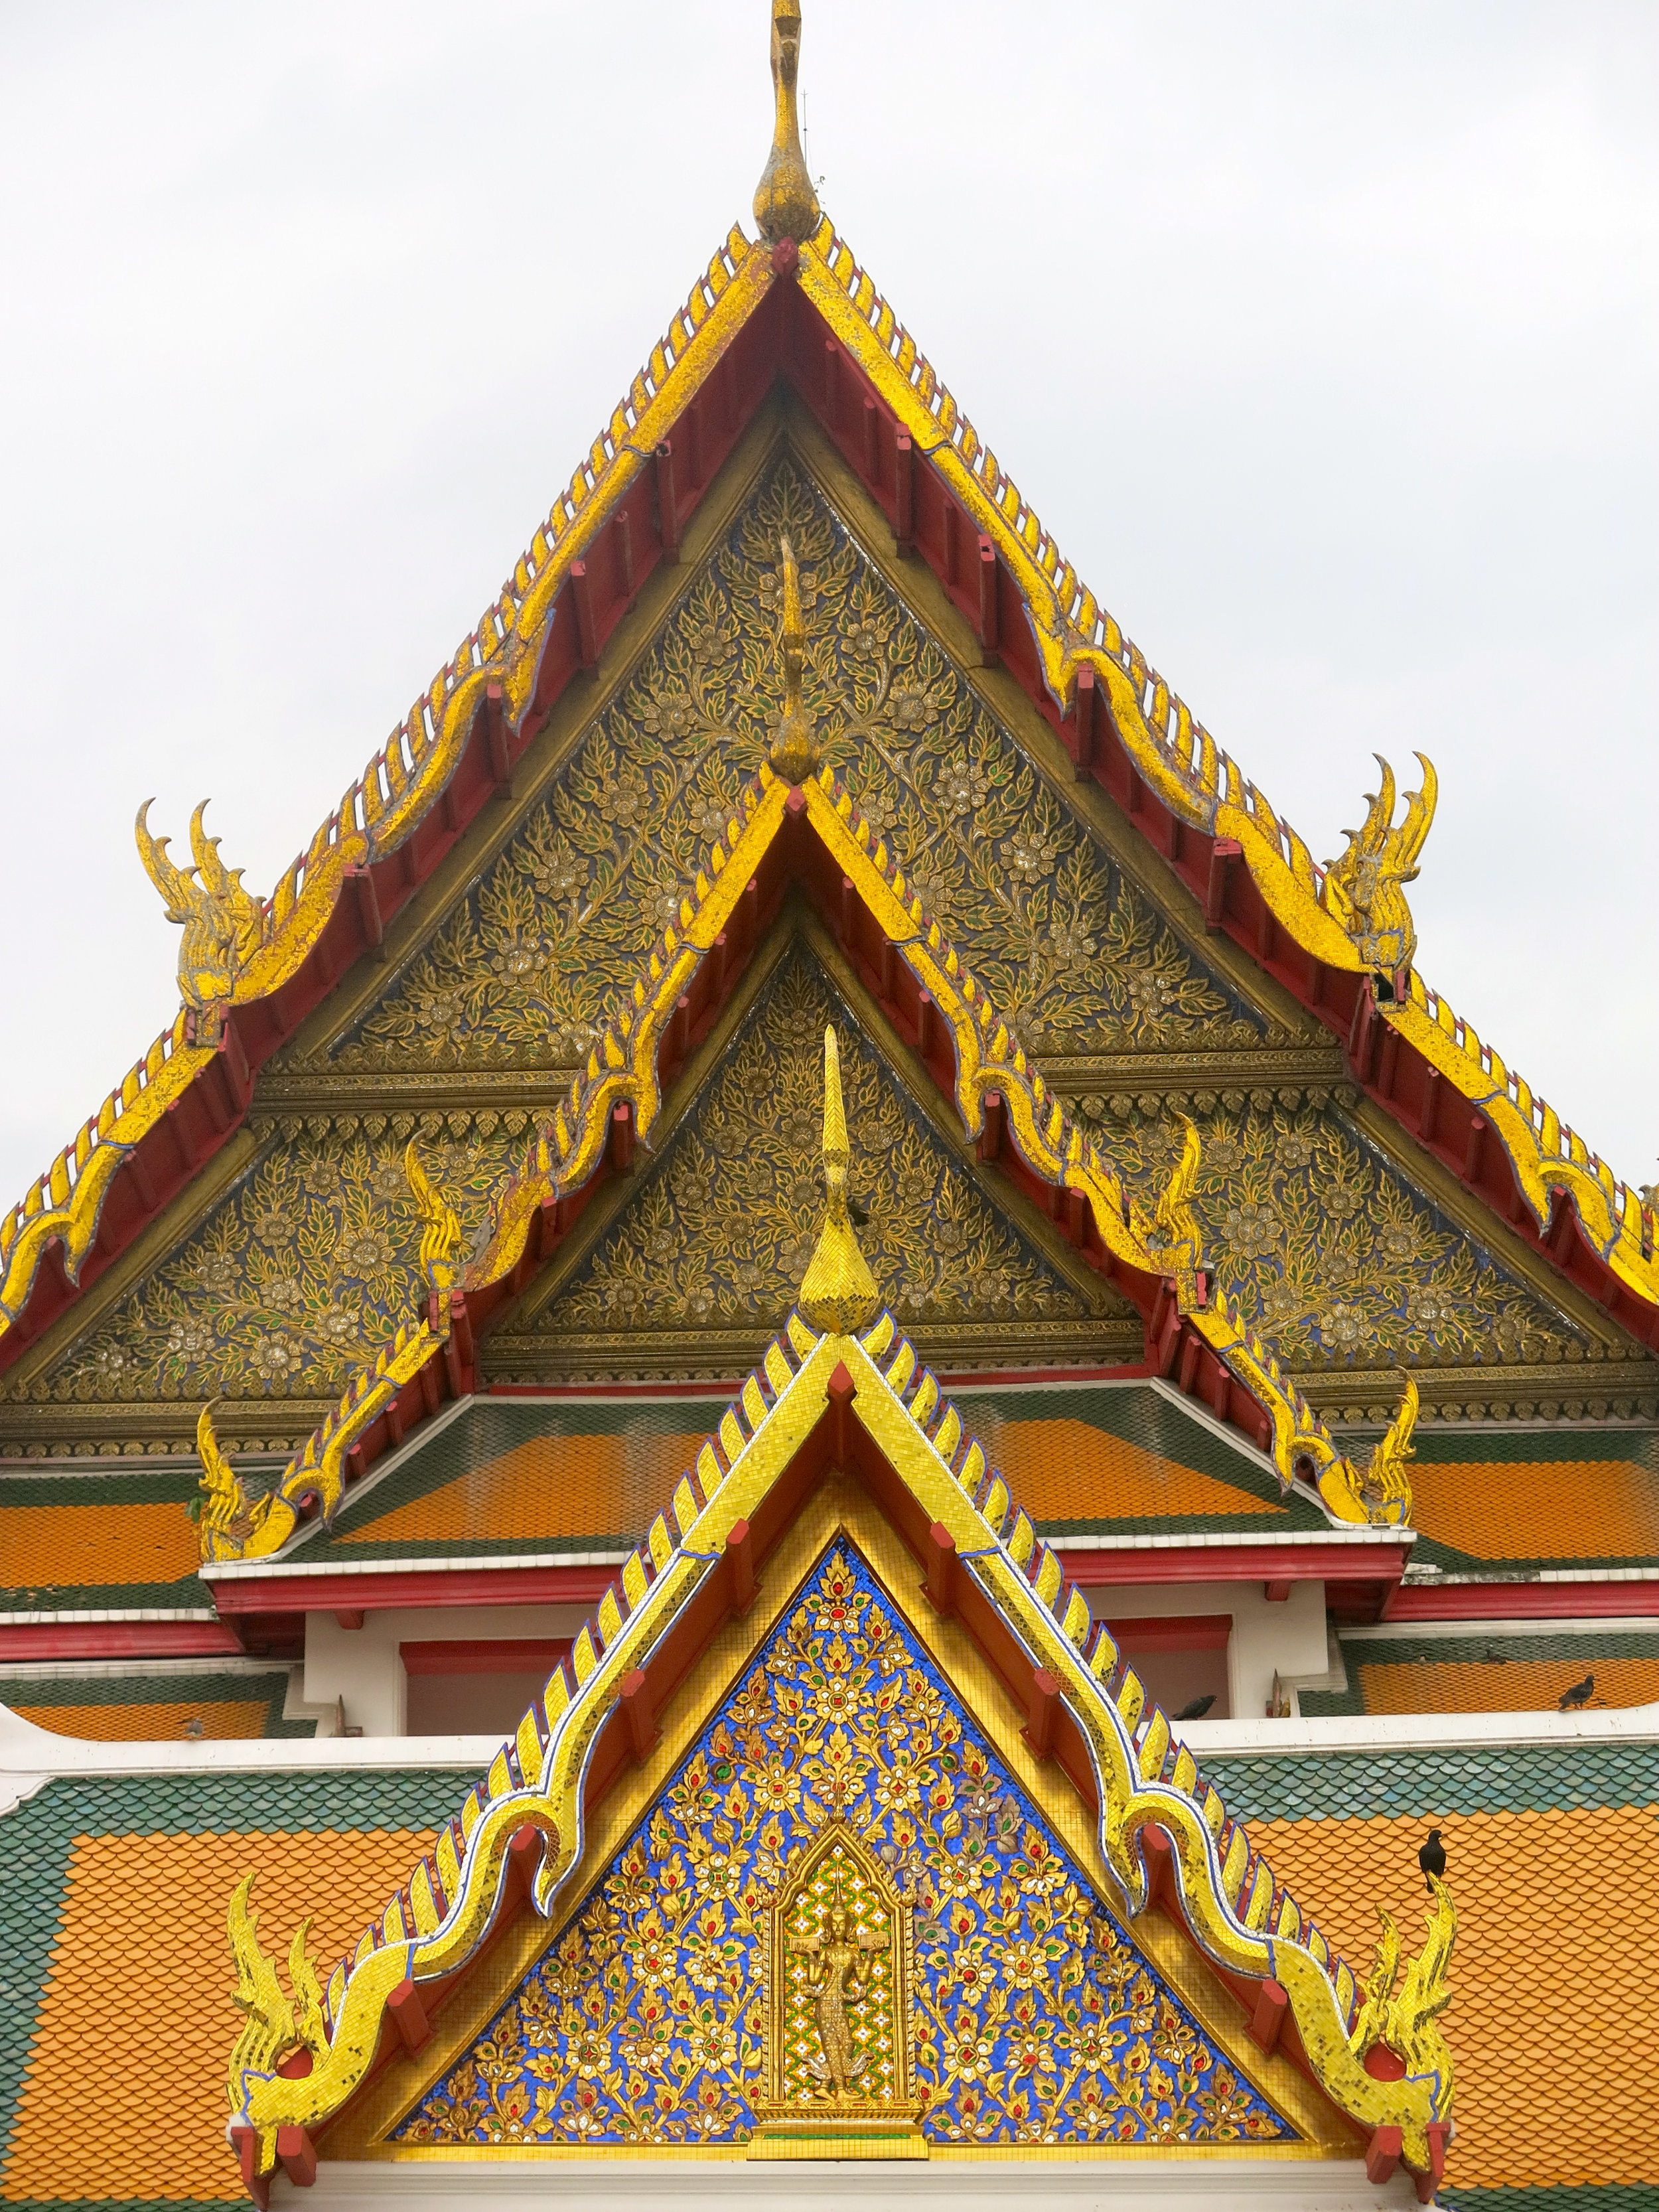 The temple was built for the Chinese community of Bangkok